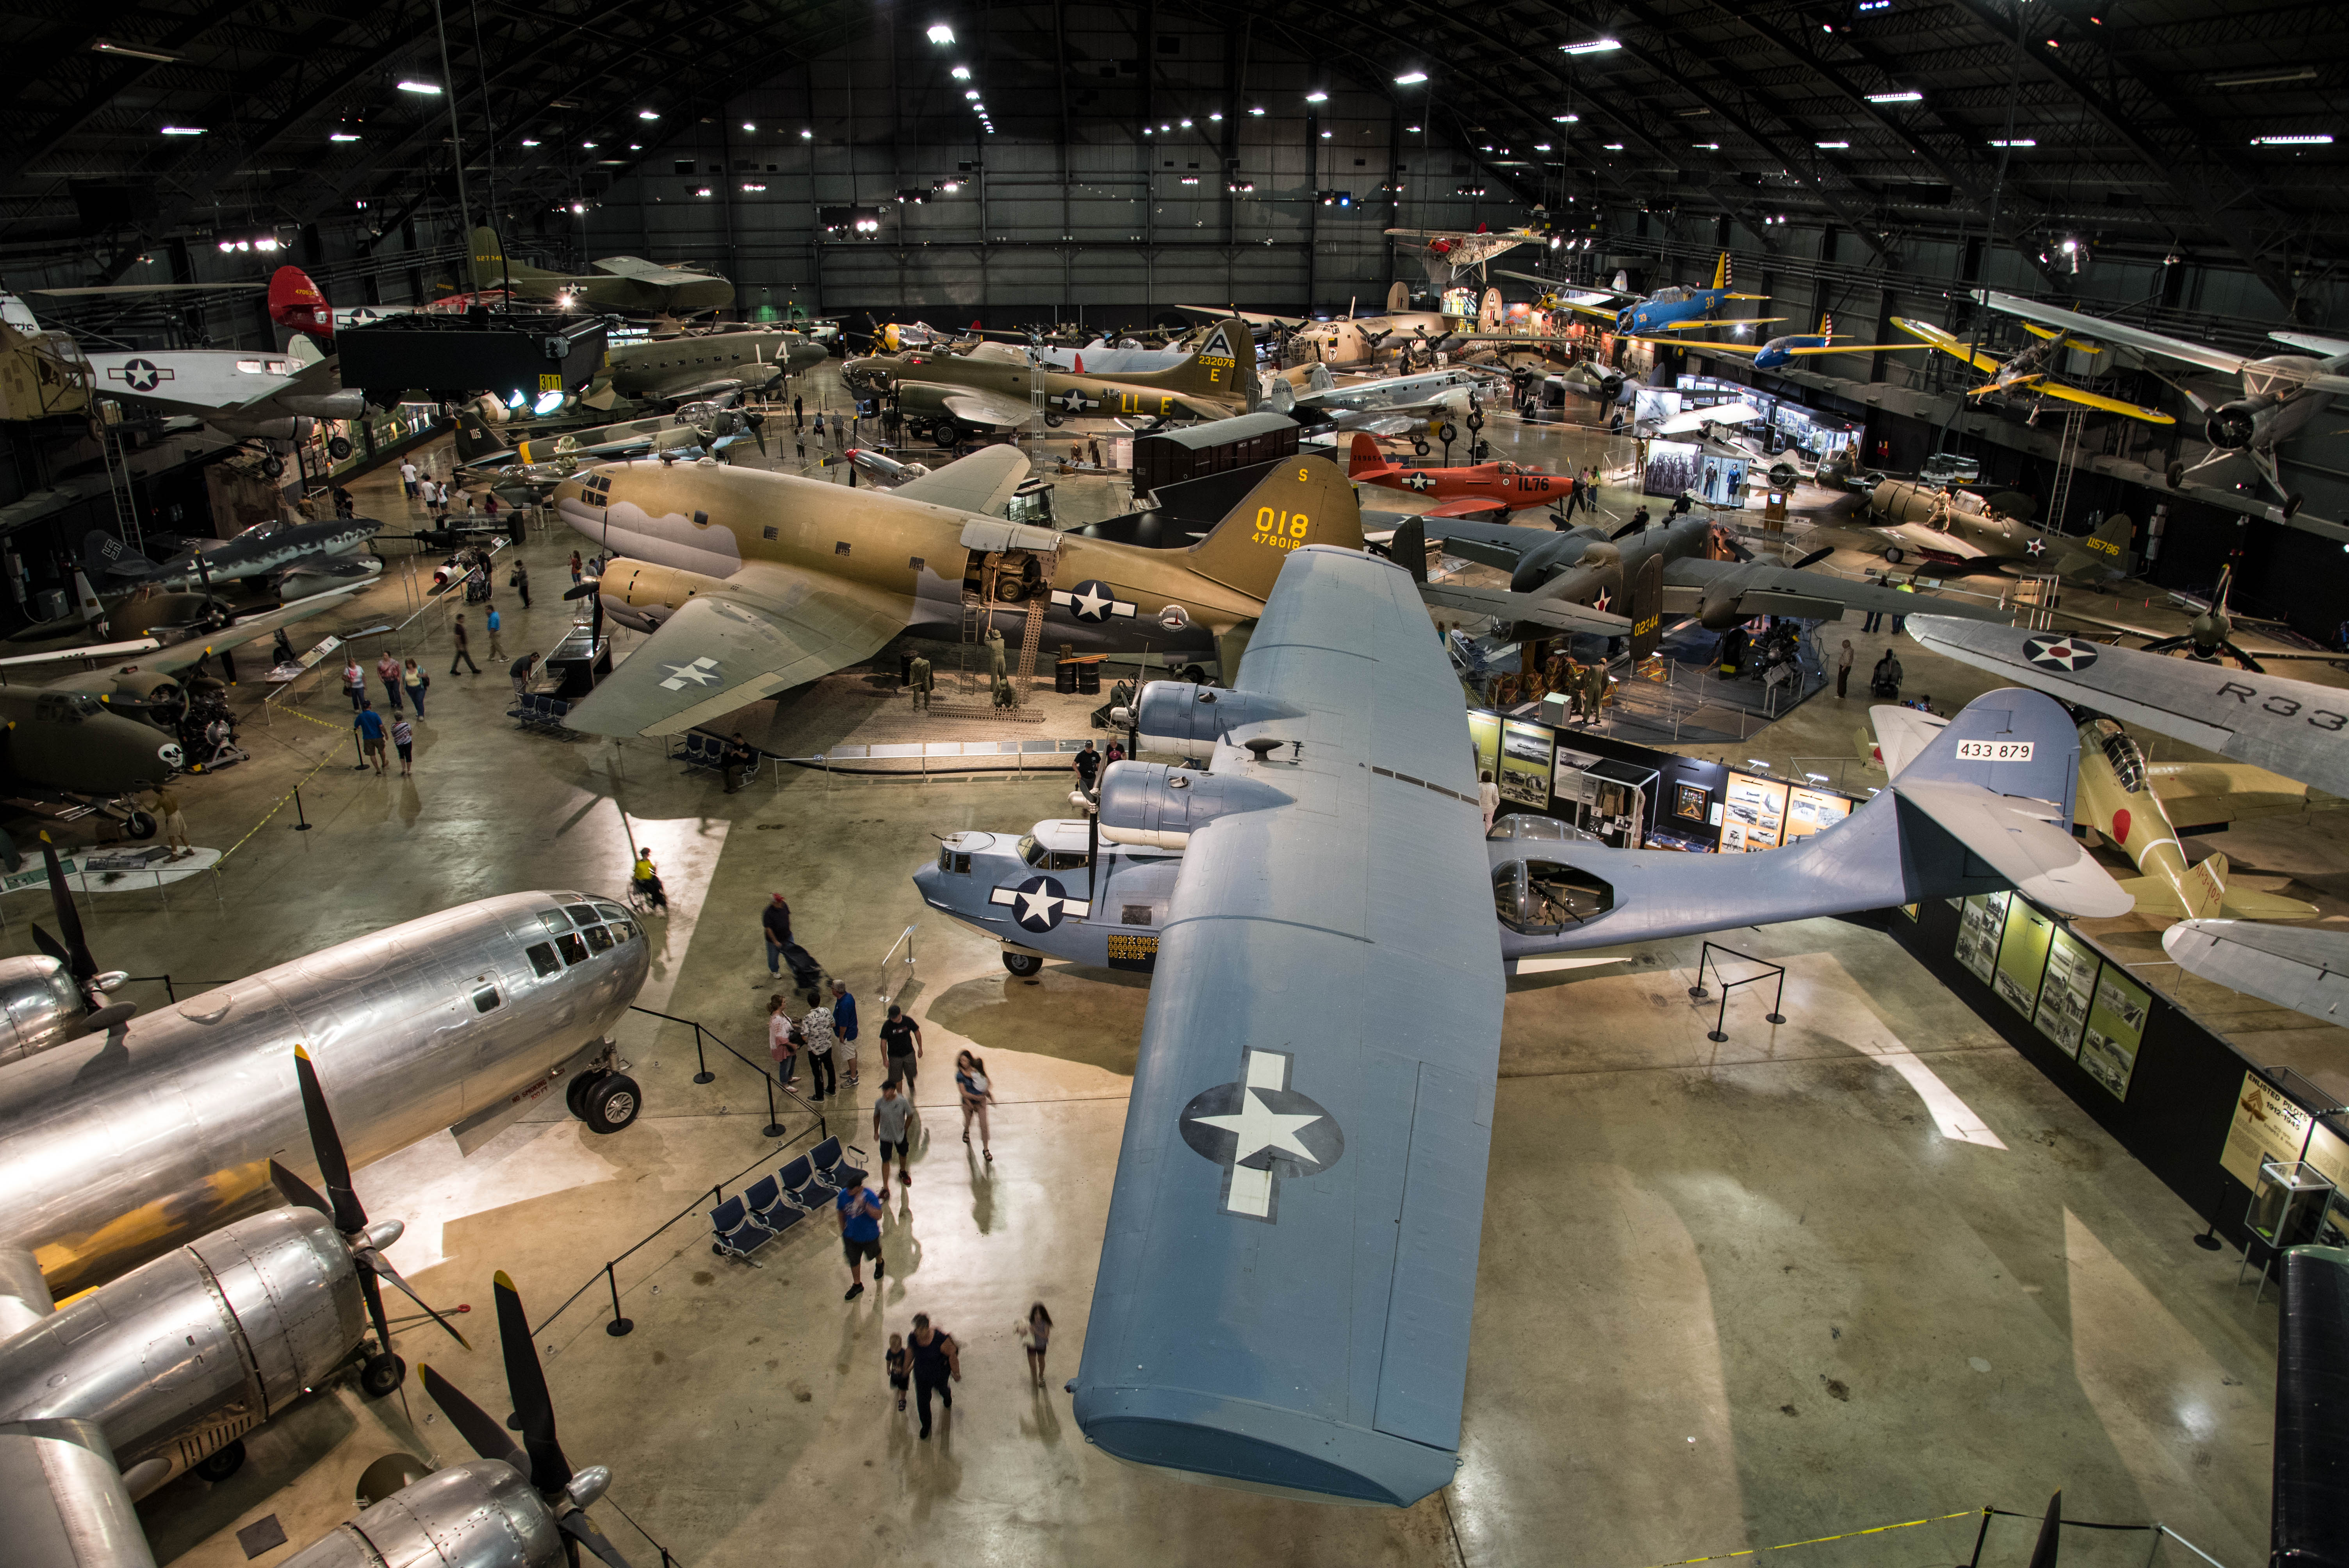 FileWWII Gallery At The National Museum Of The US Air Forcejpg - Us air force museum